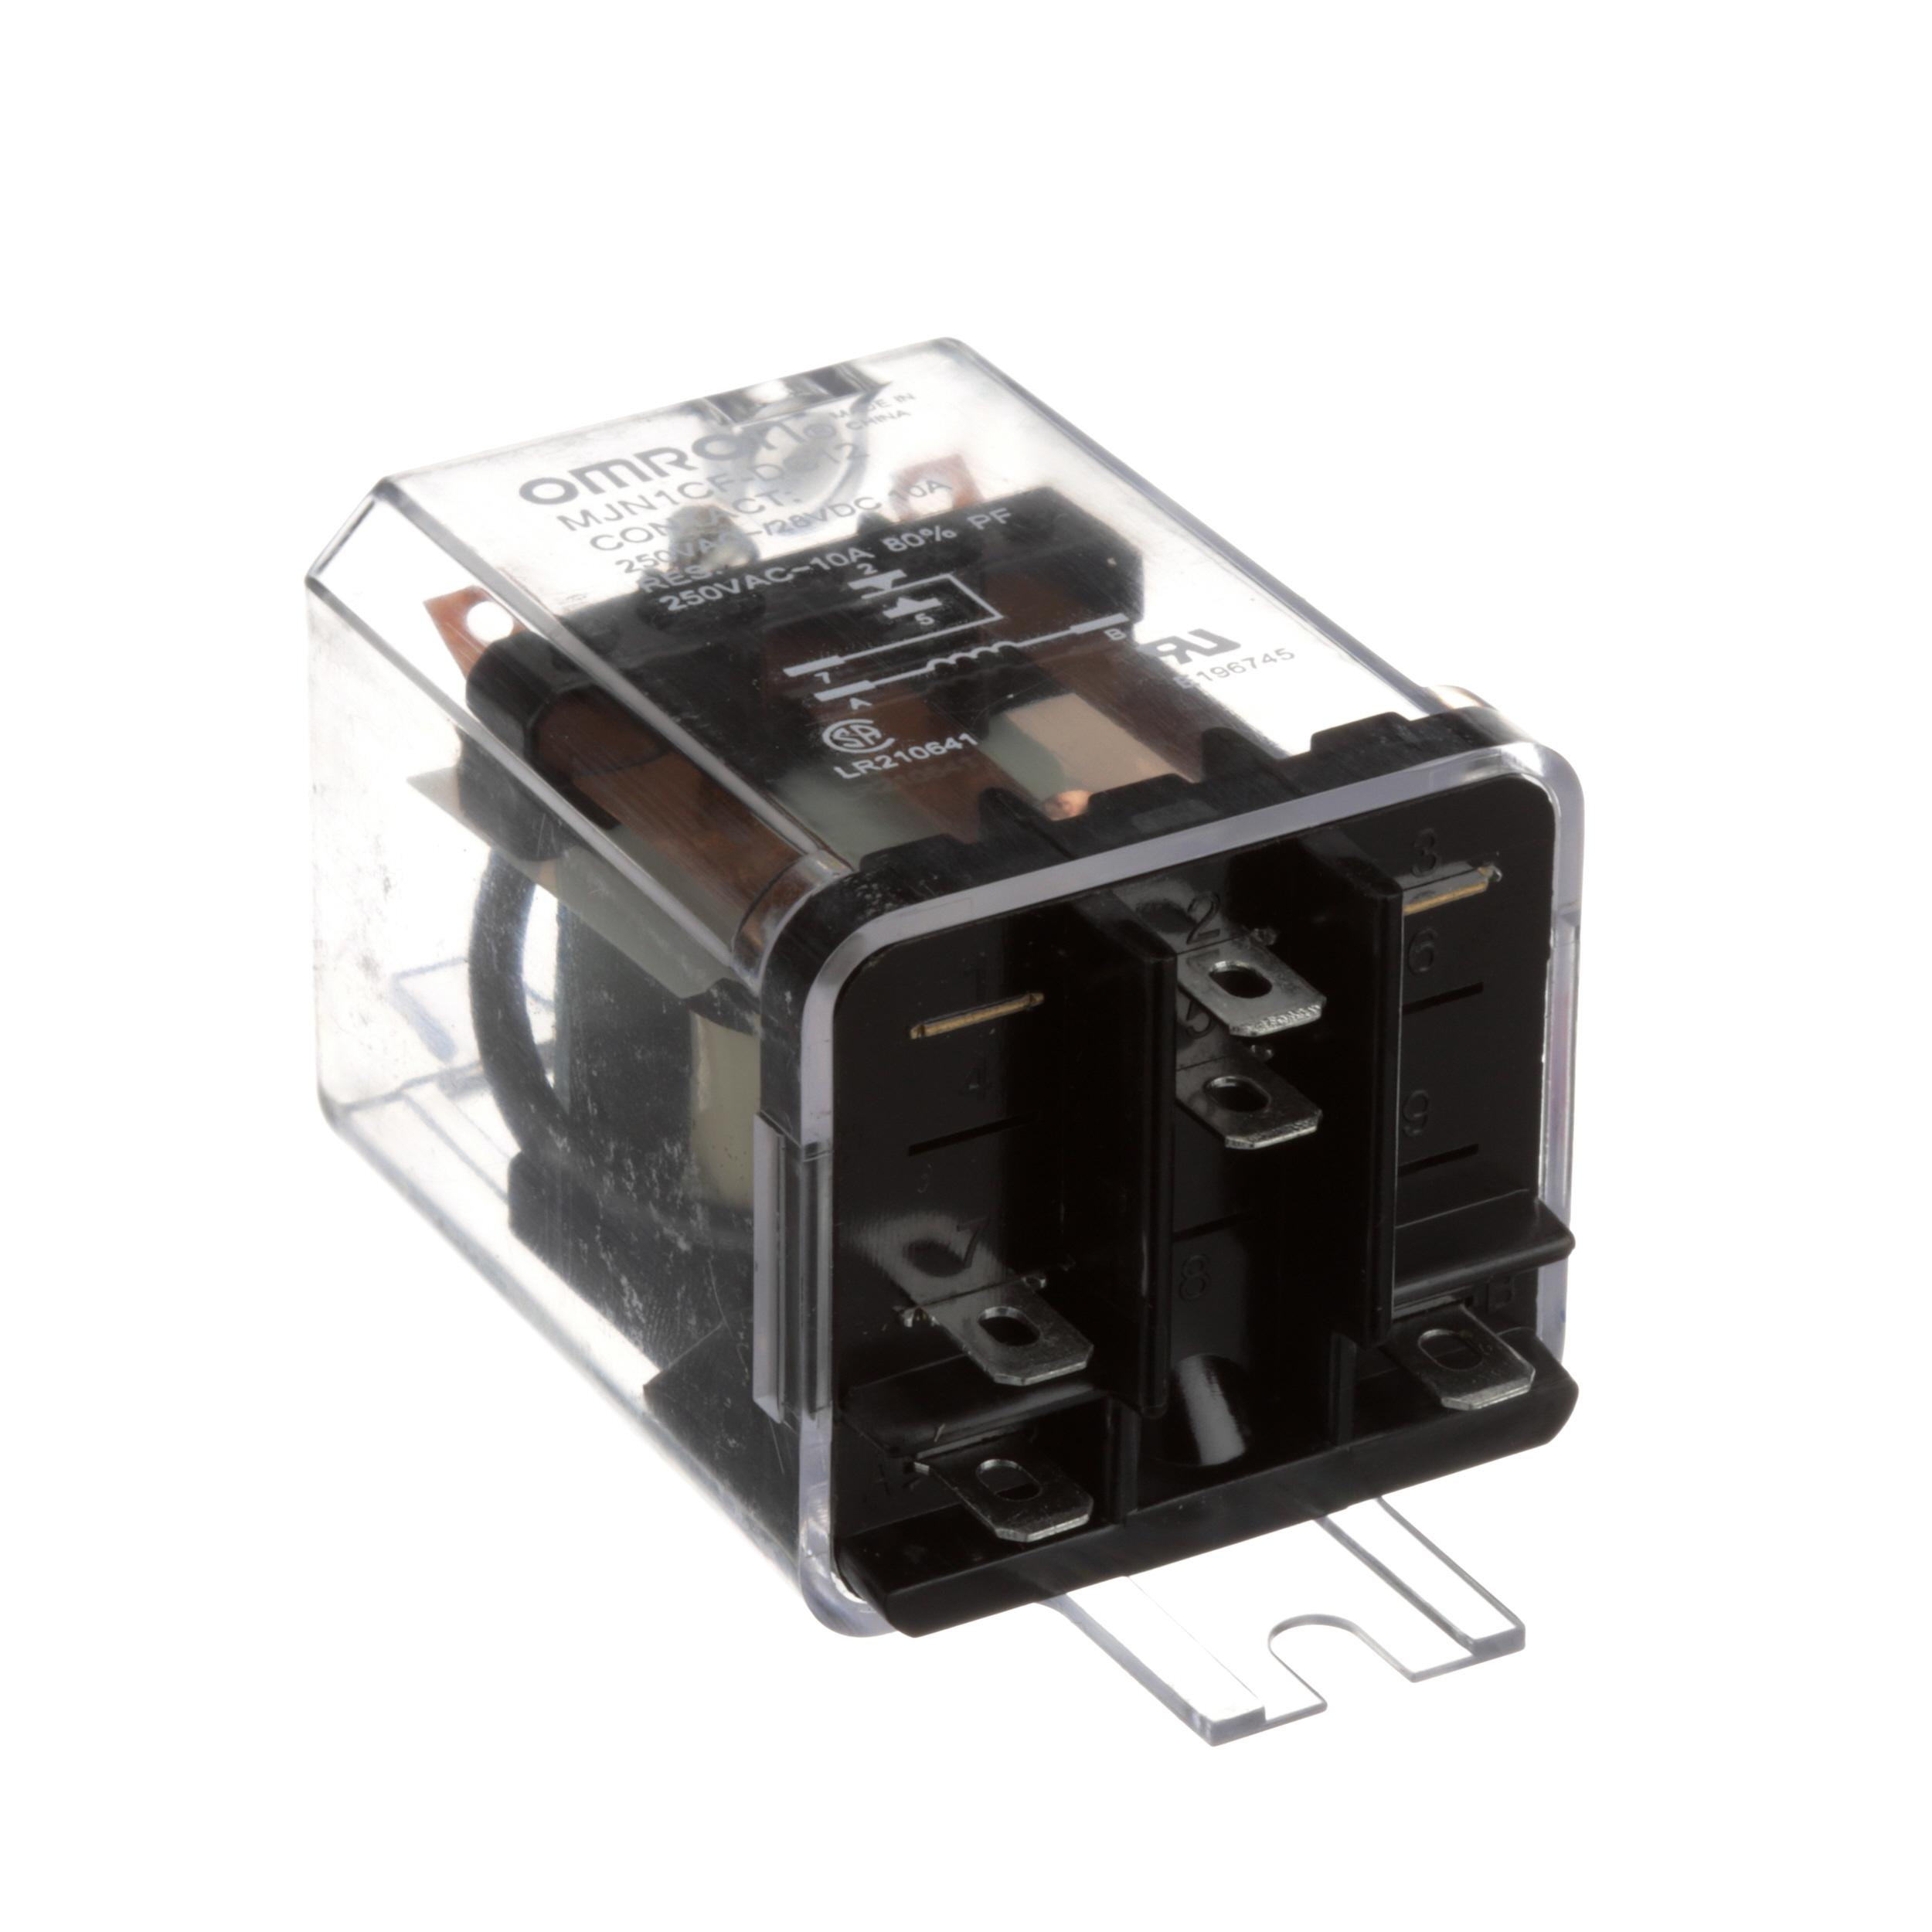 CLEVELAND RELAY;SPDT/10A/12VDC OMRON #MJN1CF-DC12